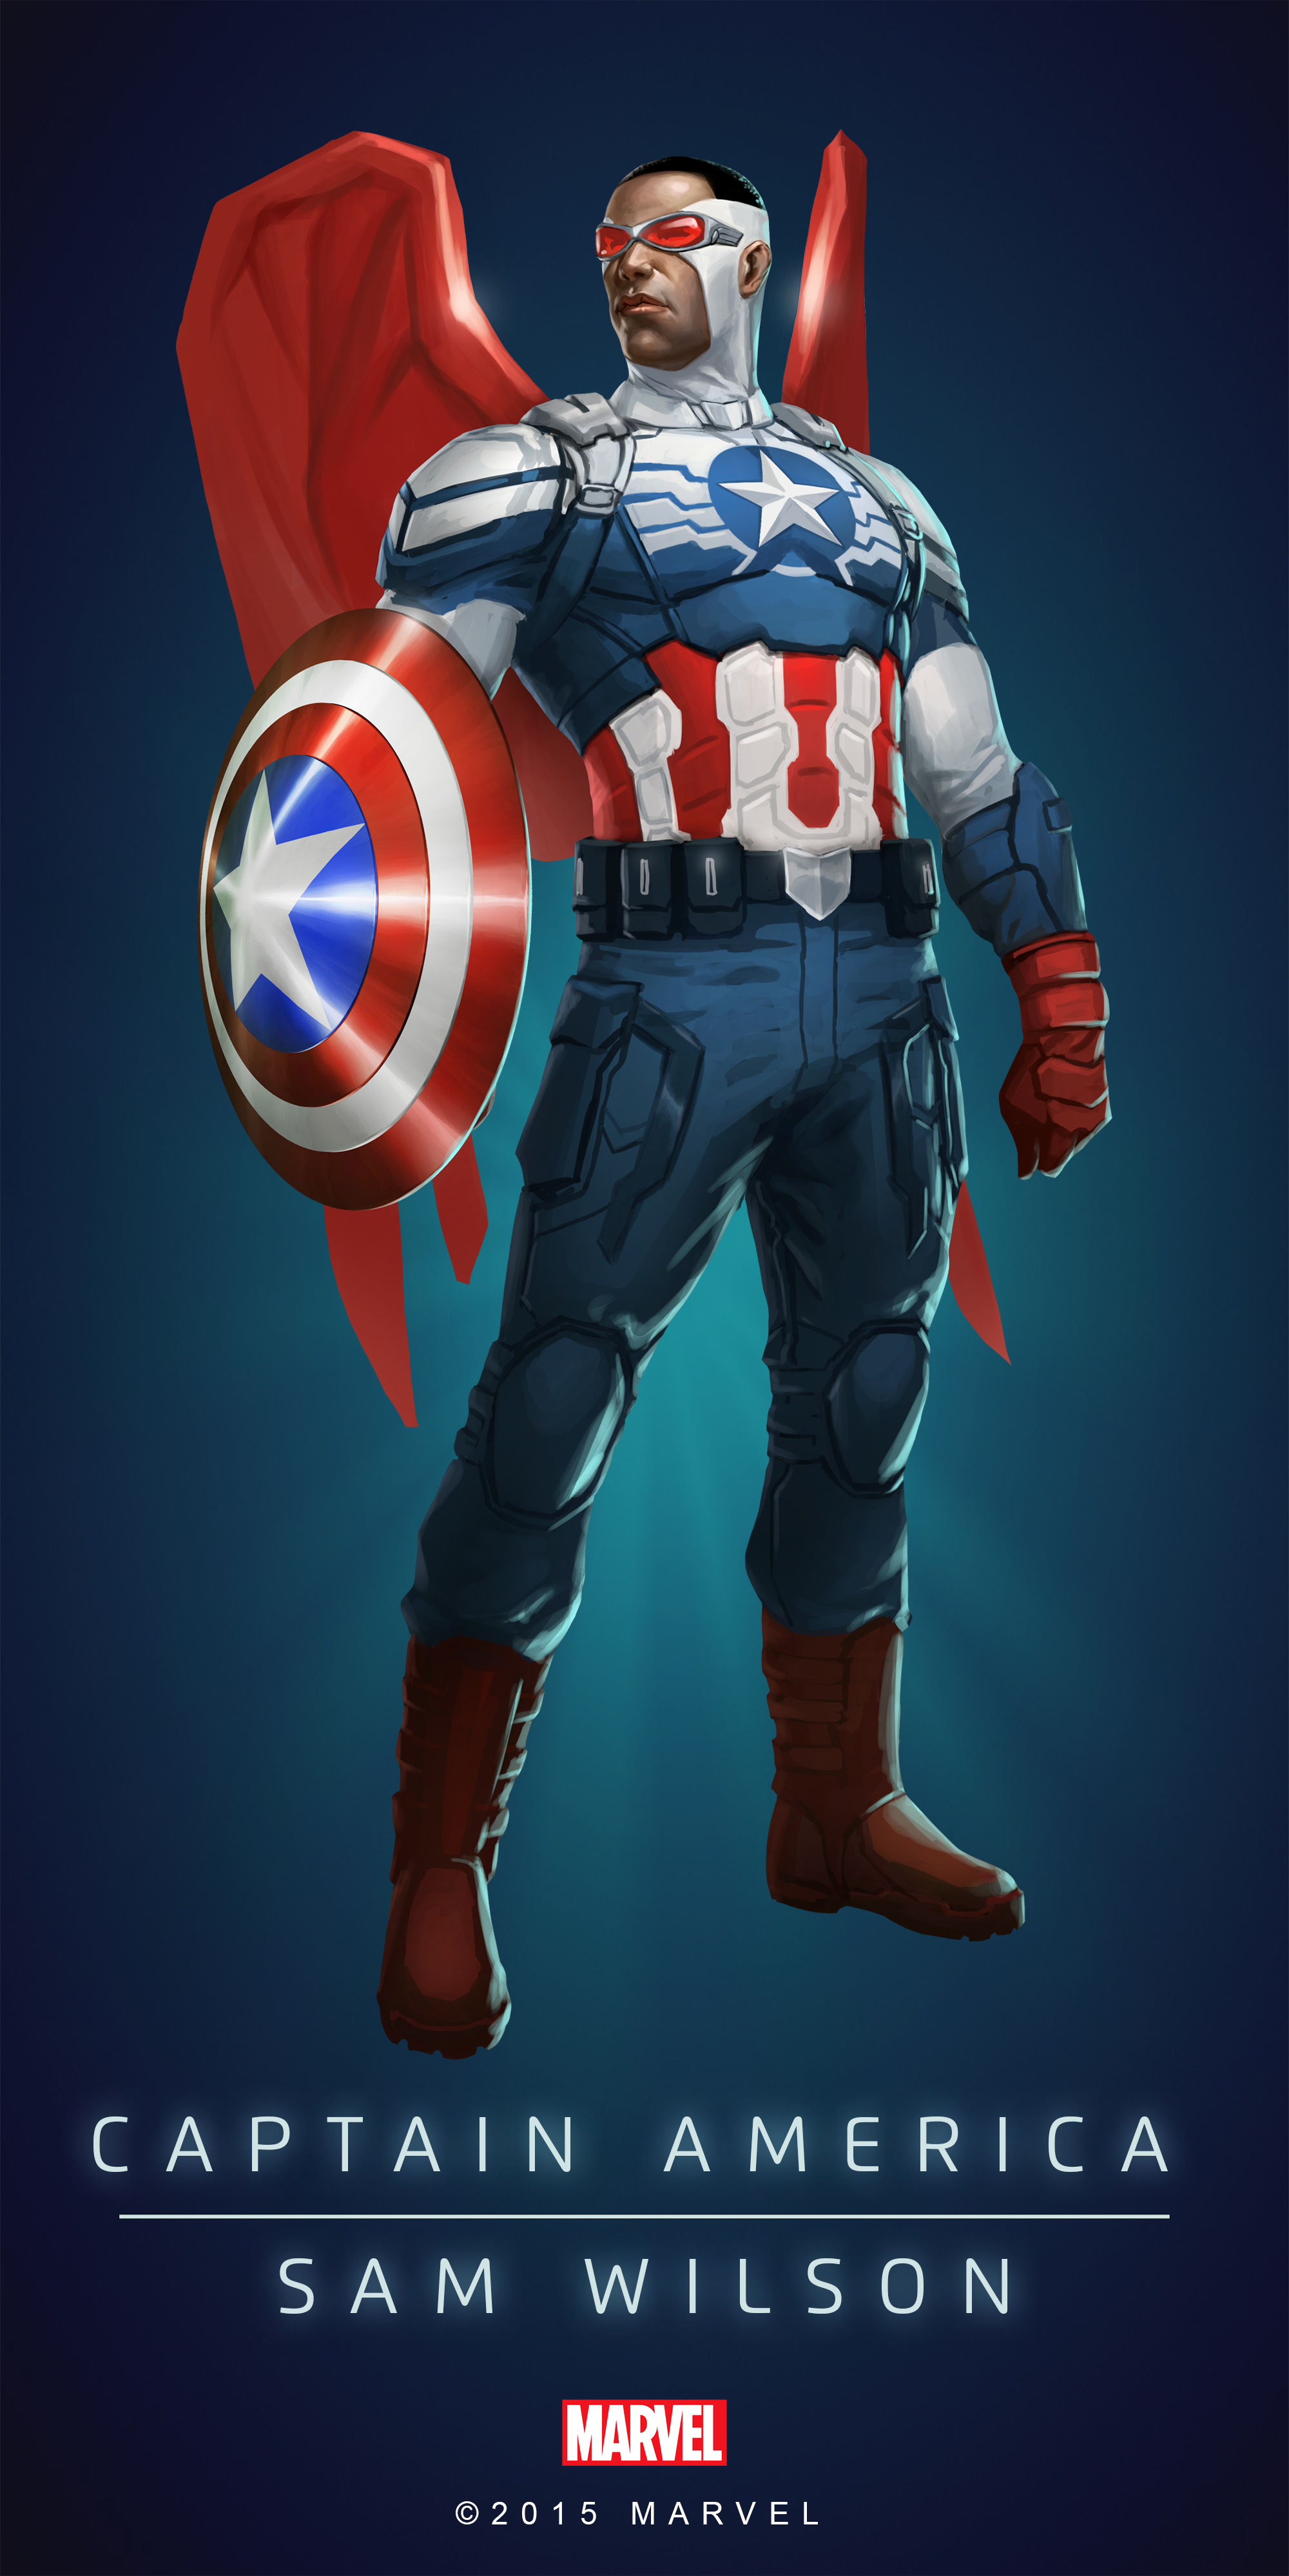 captain america sam wilson poster 01 d3go marvel posters pinterest capt america marvel. Black Bedroom Furniture Sets. Home Design Ideas